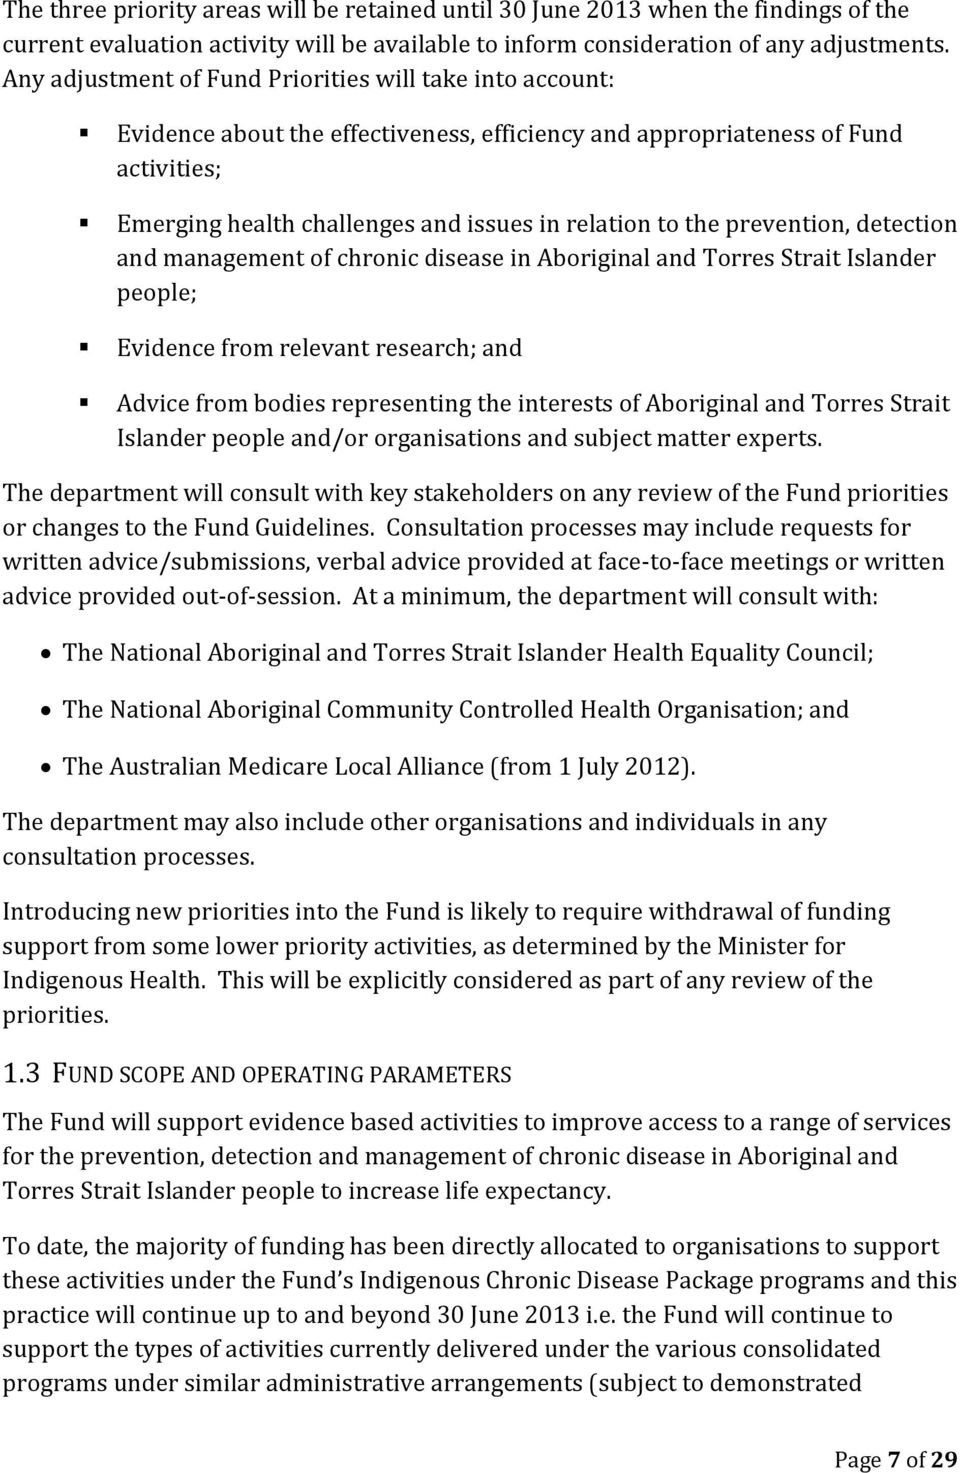 prevention, detection and management of chronic disease in Aboriginal and Torres Strait Islander people; Evidence from relevant research; and Advice from bodies representing the interests of